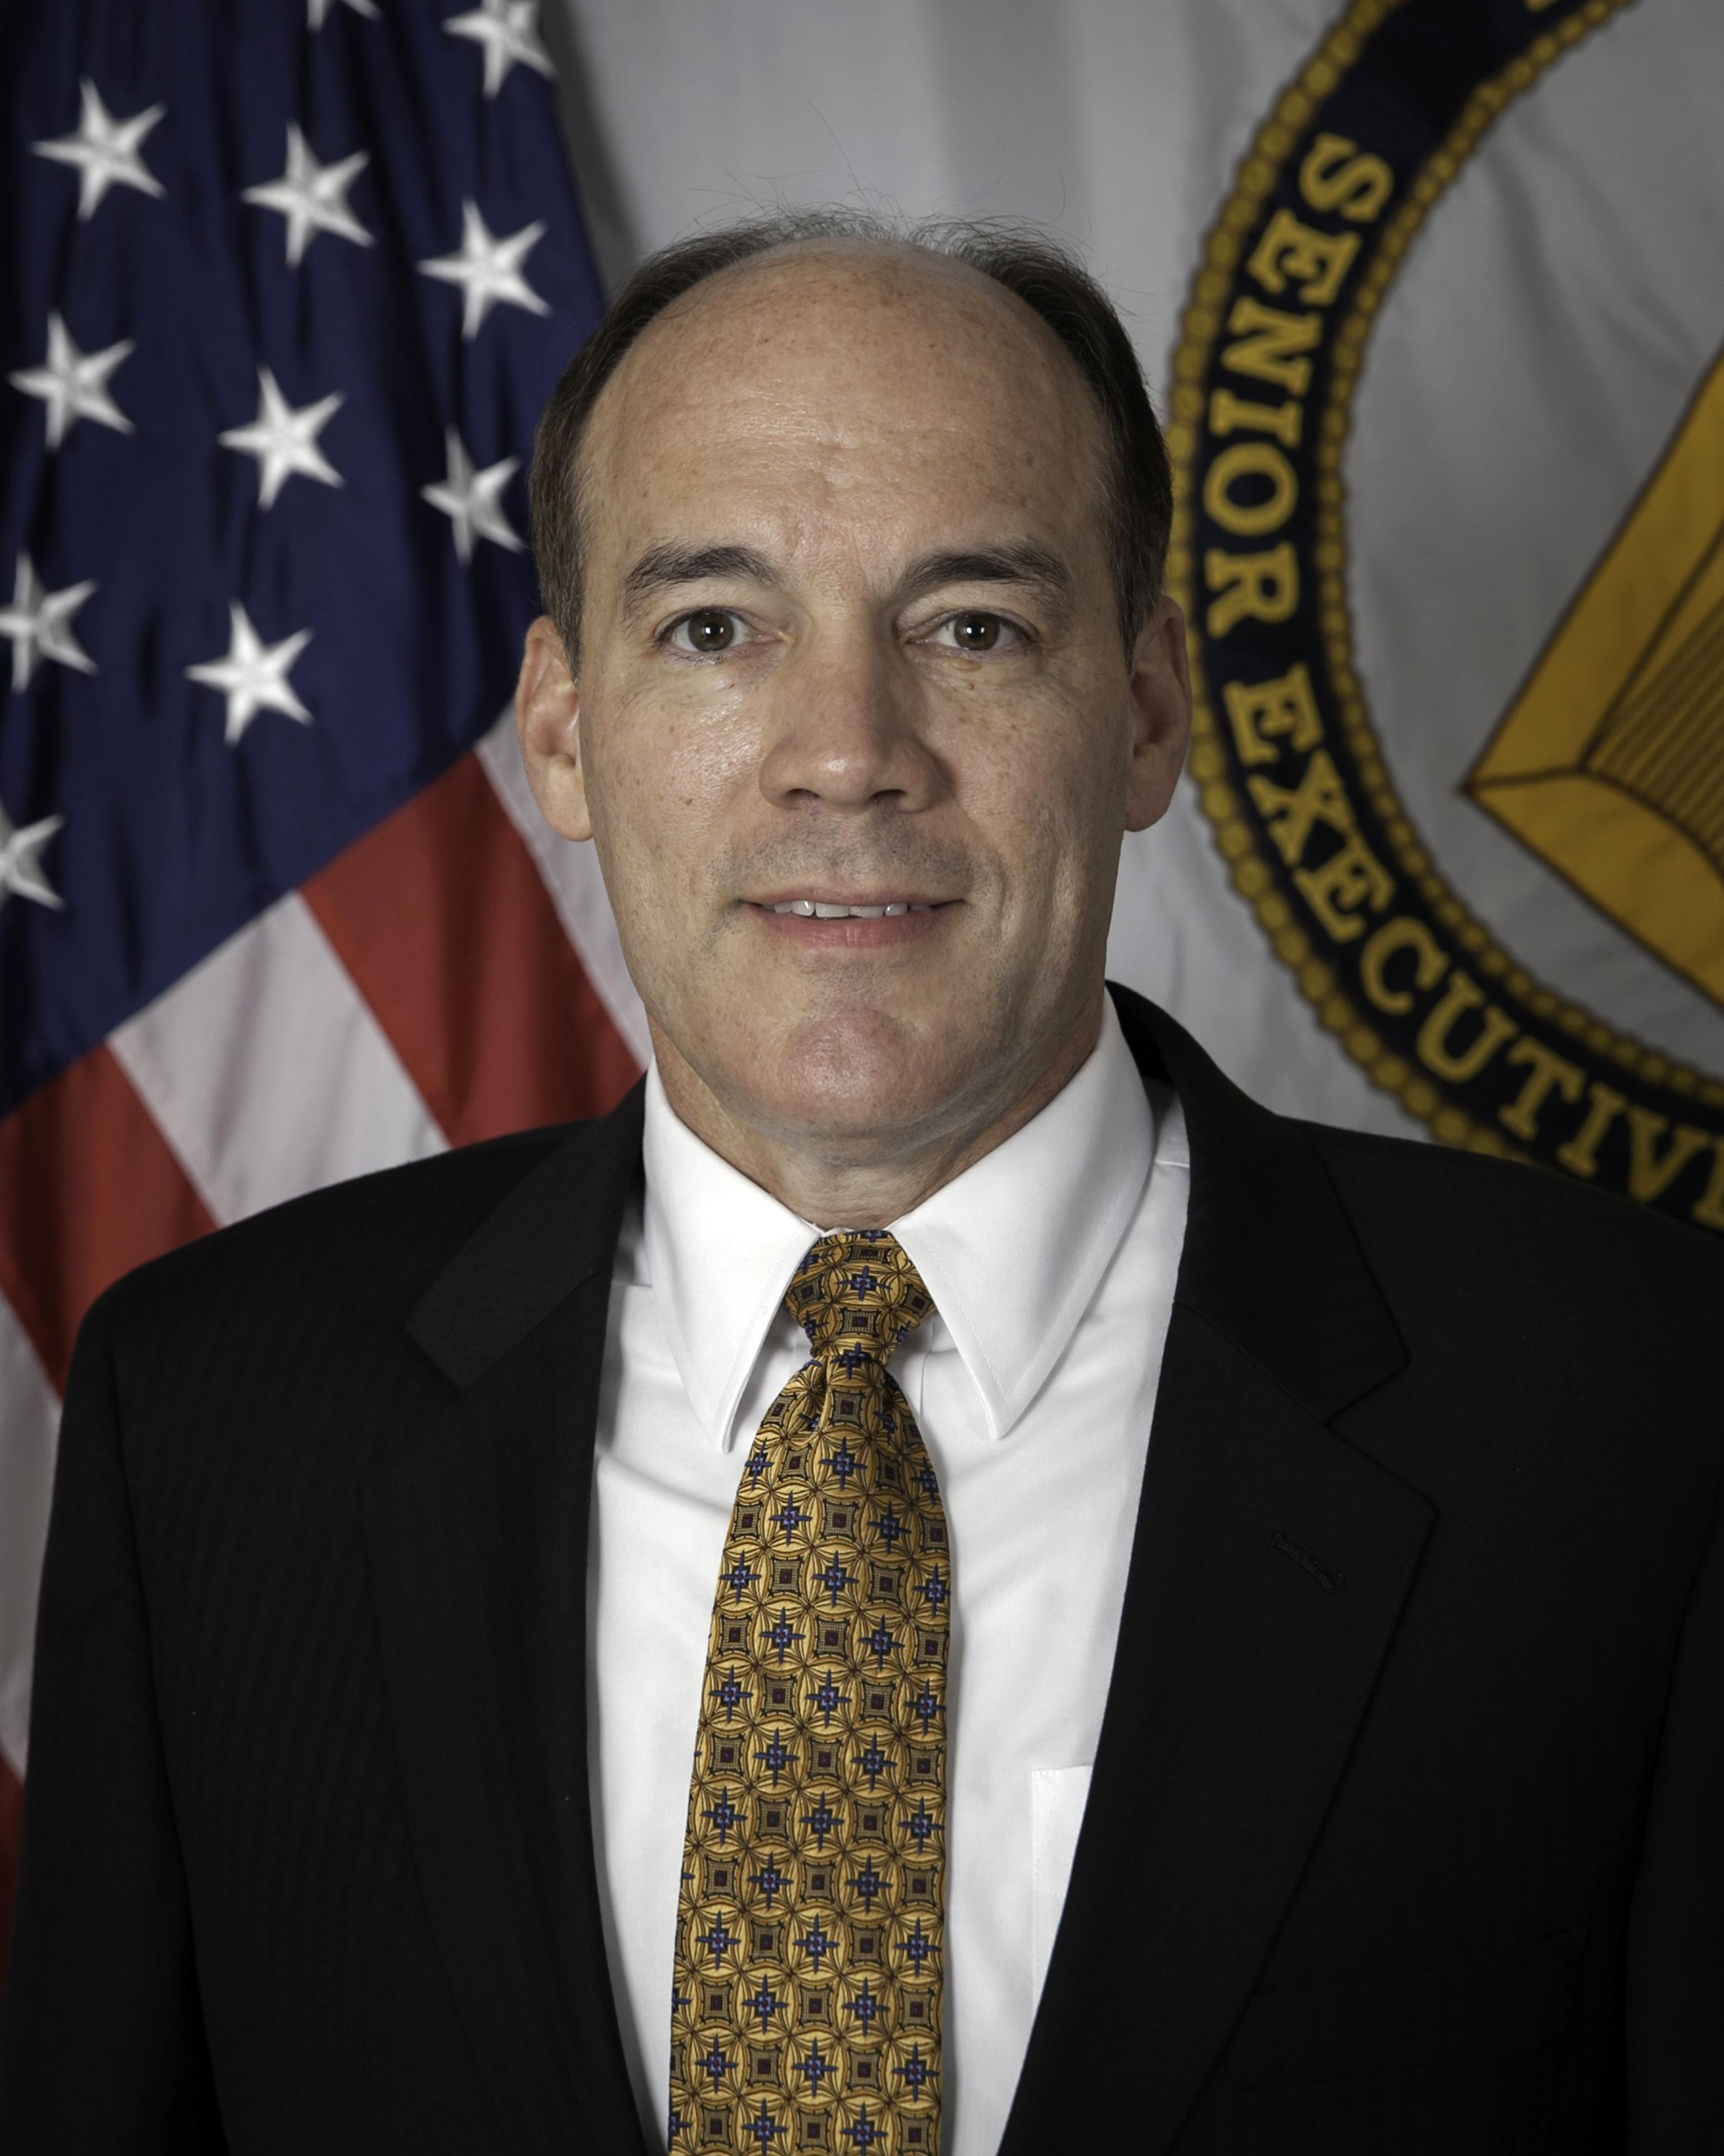 Headshot of Ronald W. Pontius, Deputy to the Commanding General, U.S. Army Cyber Command